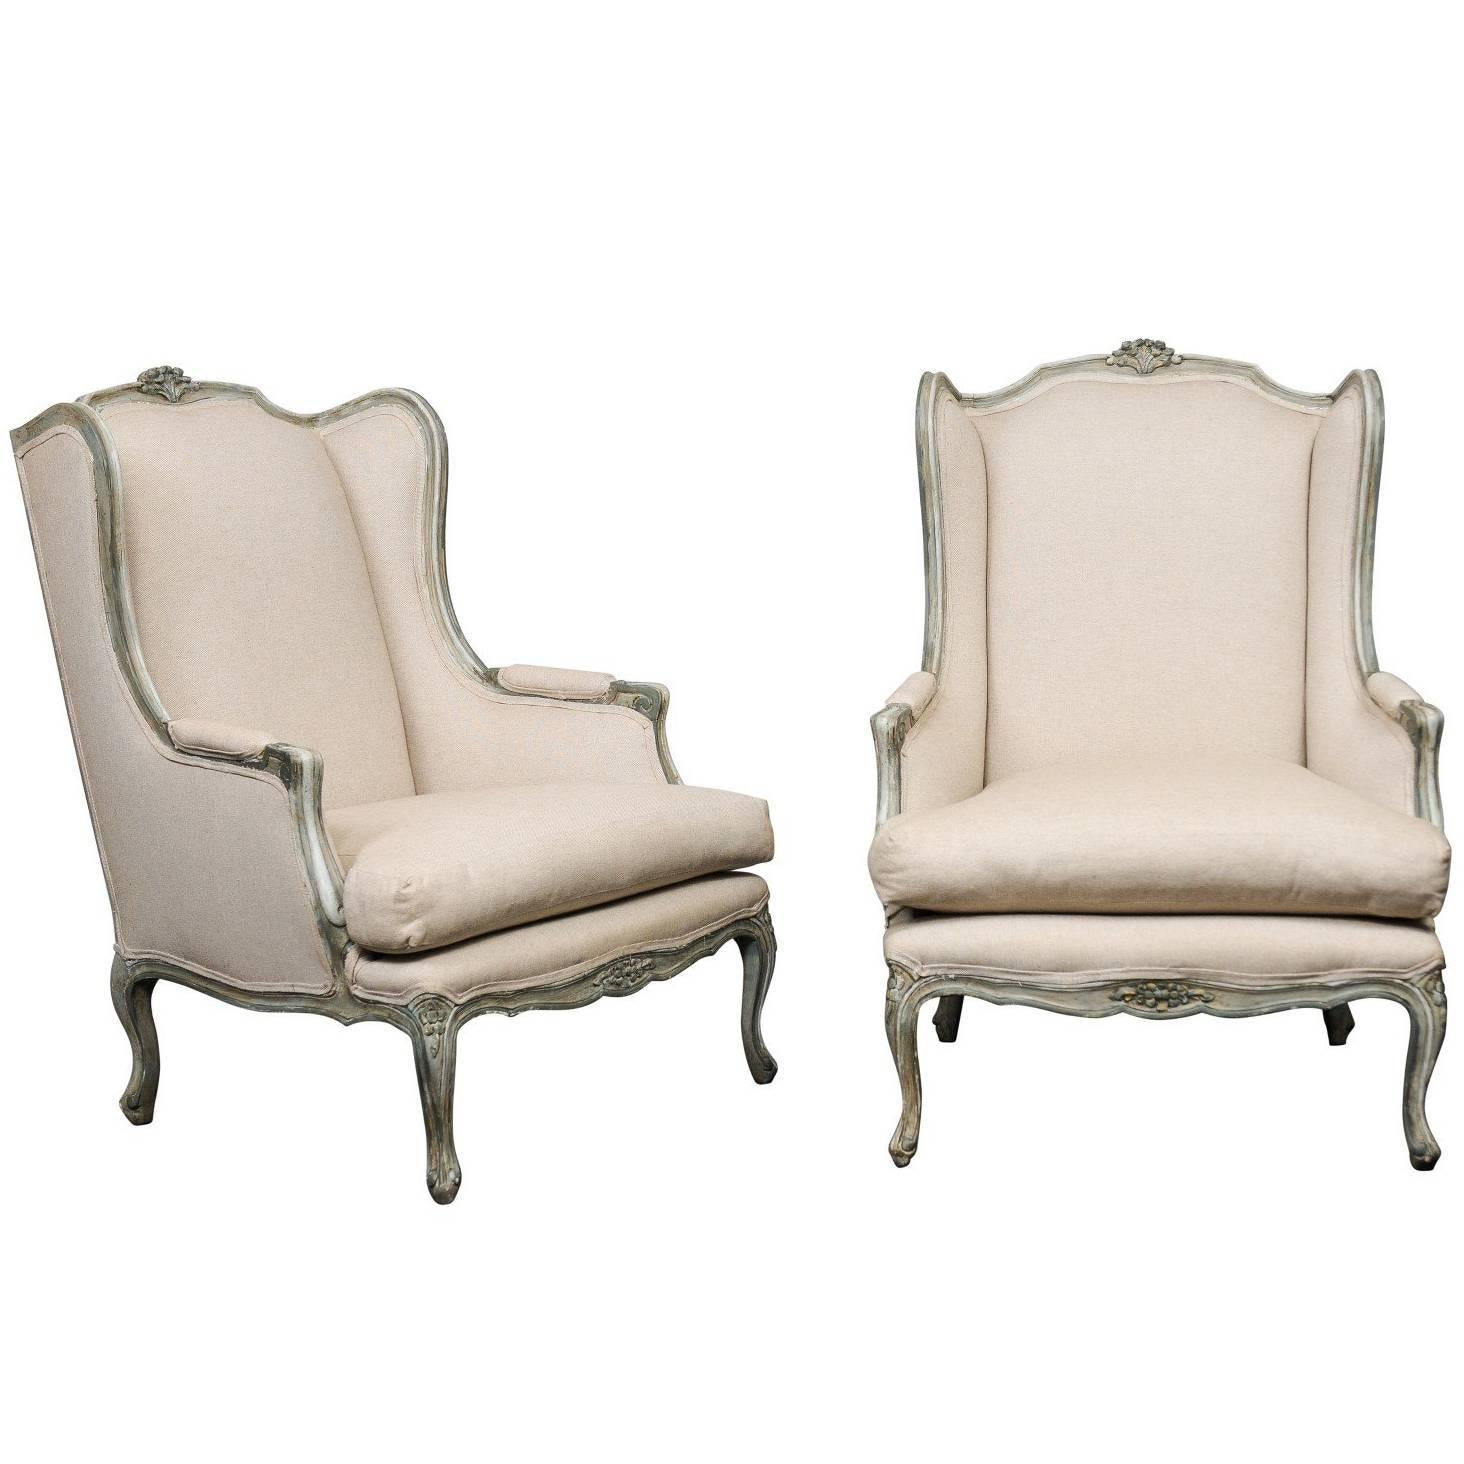 pair of mid20th century french carved wood and upholstered wingback chairs